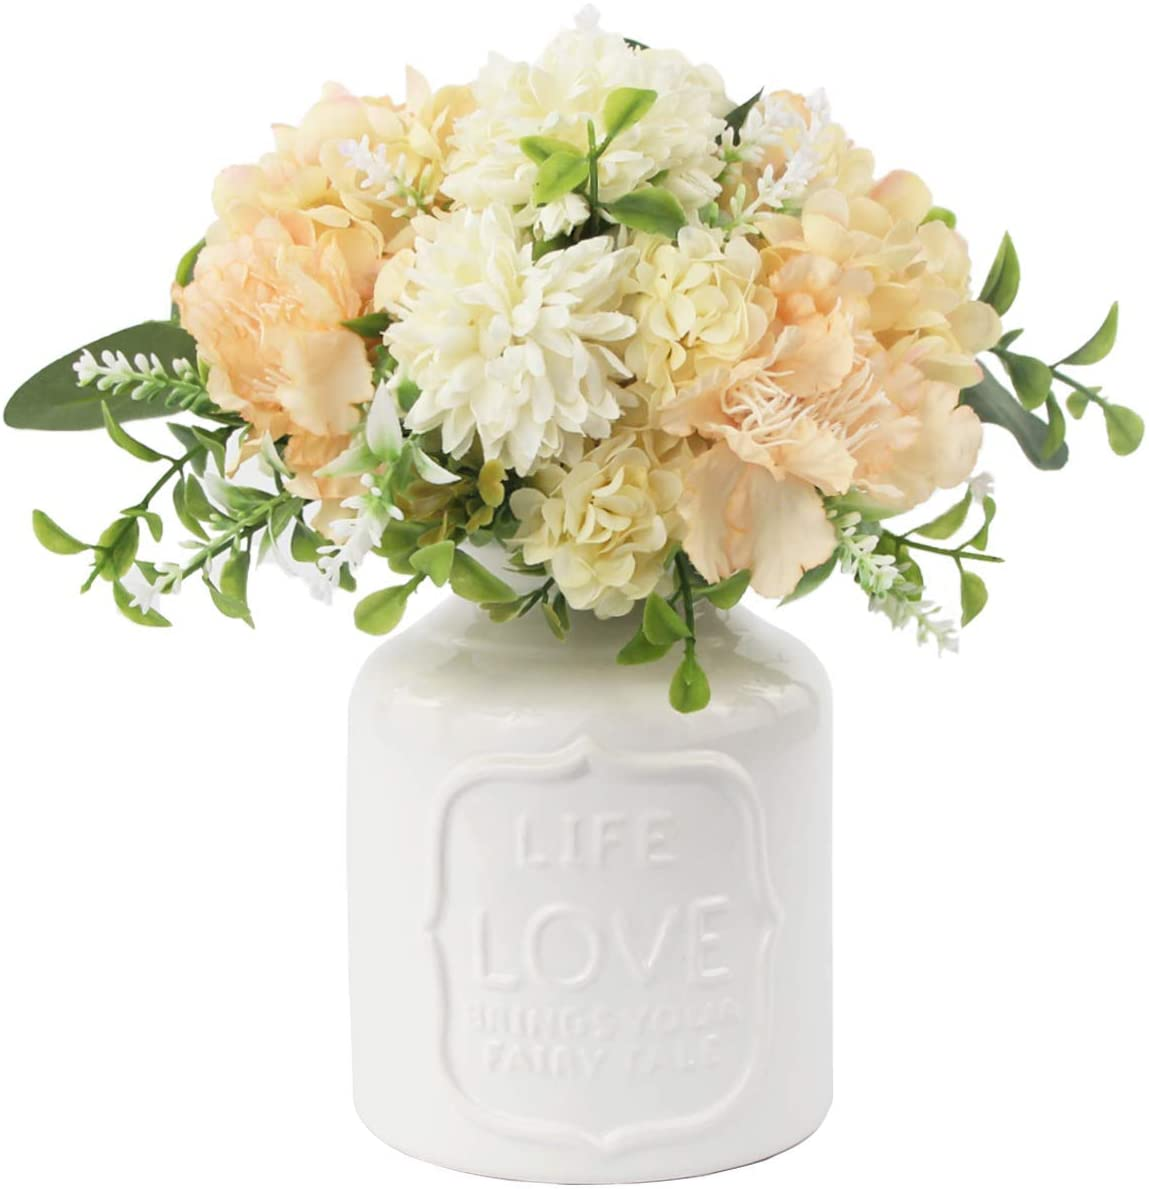 Z-YAO Artificial Flowers in Vase Fake Peach Flowers Bouquet with Ceramic Vase for Bathroom Counter Coffee Table Dining Table Wedding Centerpiece